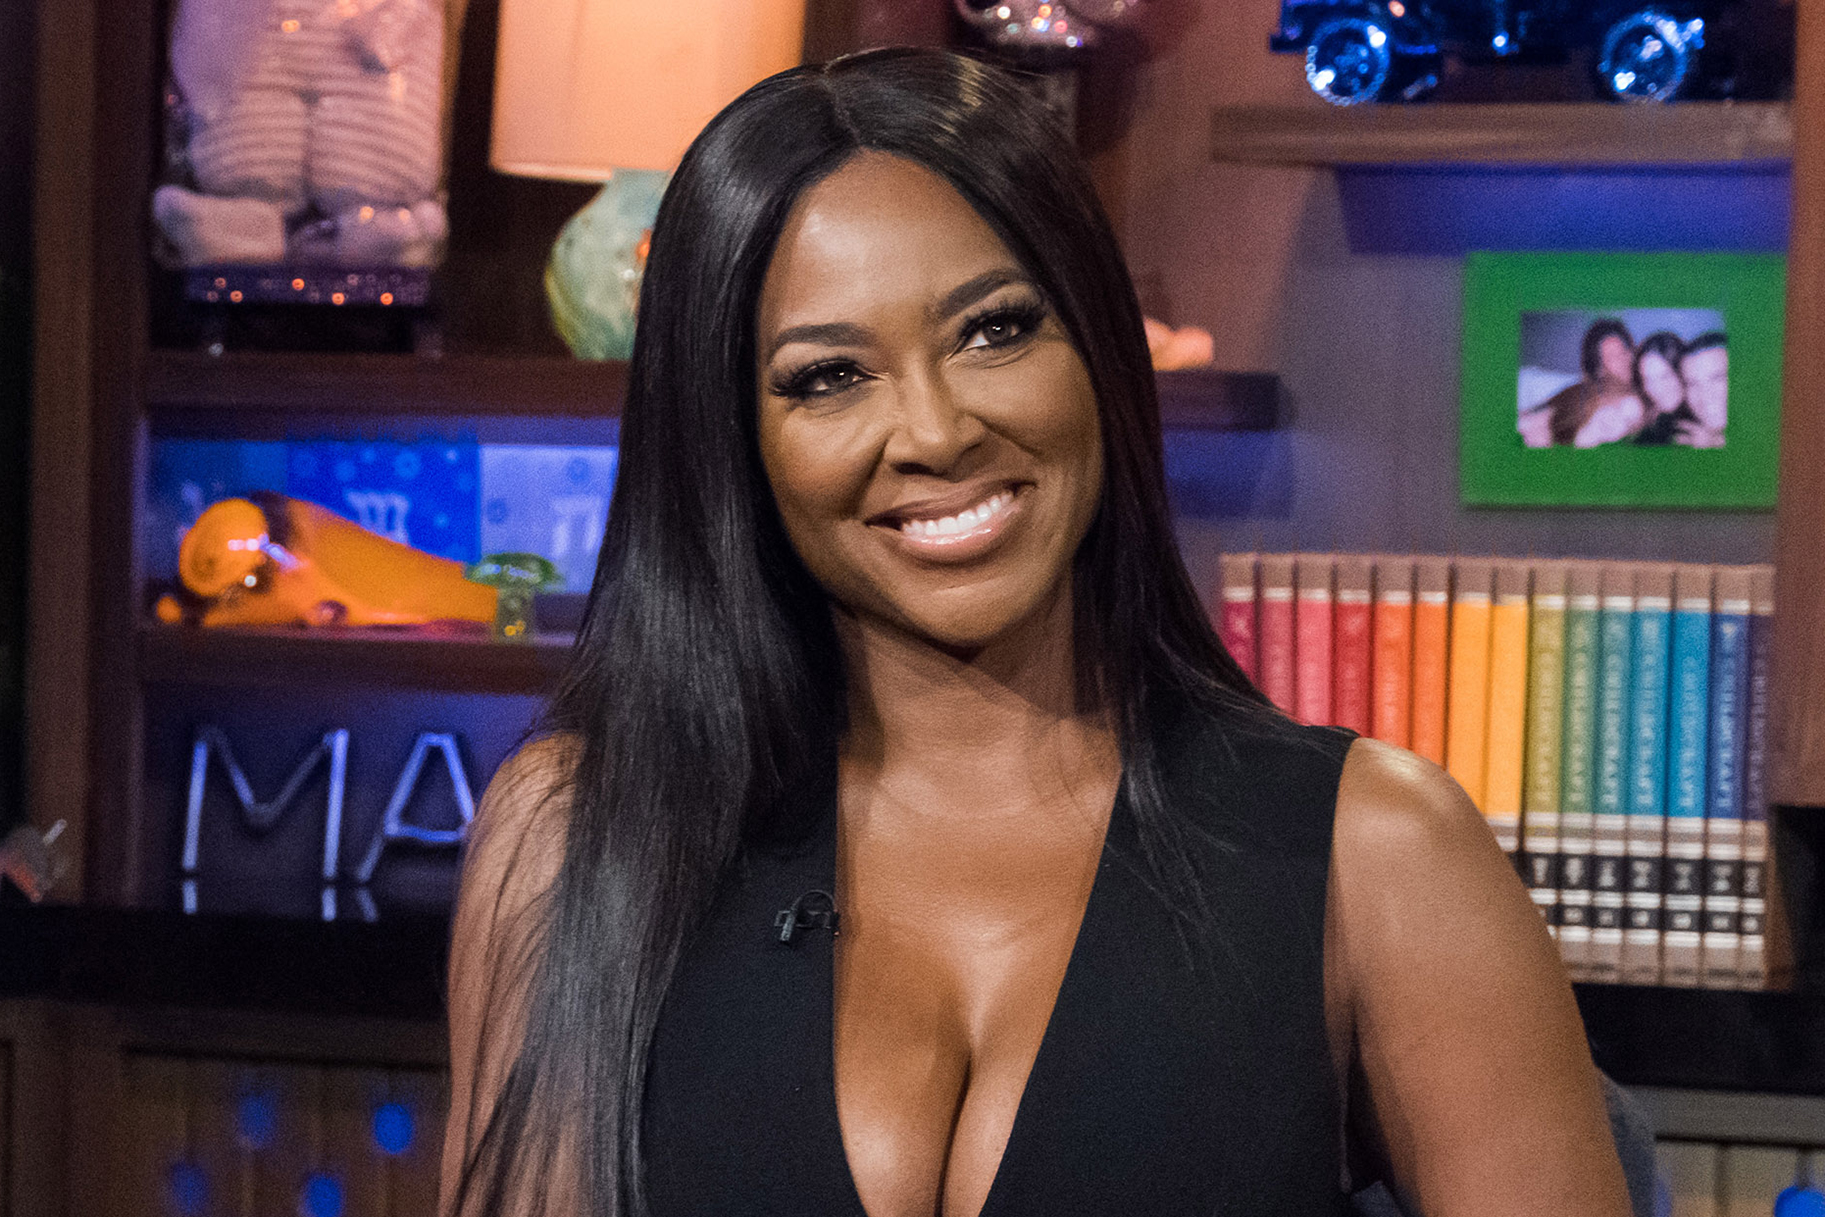 Kenya Moore's Latest Photos Have Fans Saying That NeNe Leakes Is Jealous Of Her